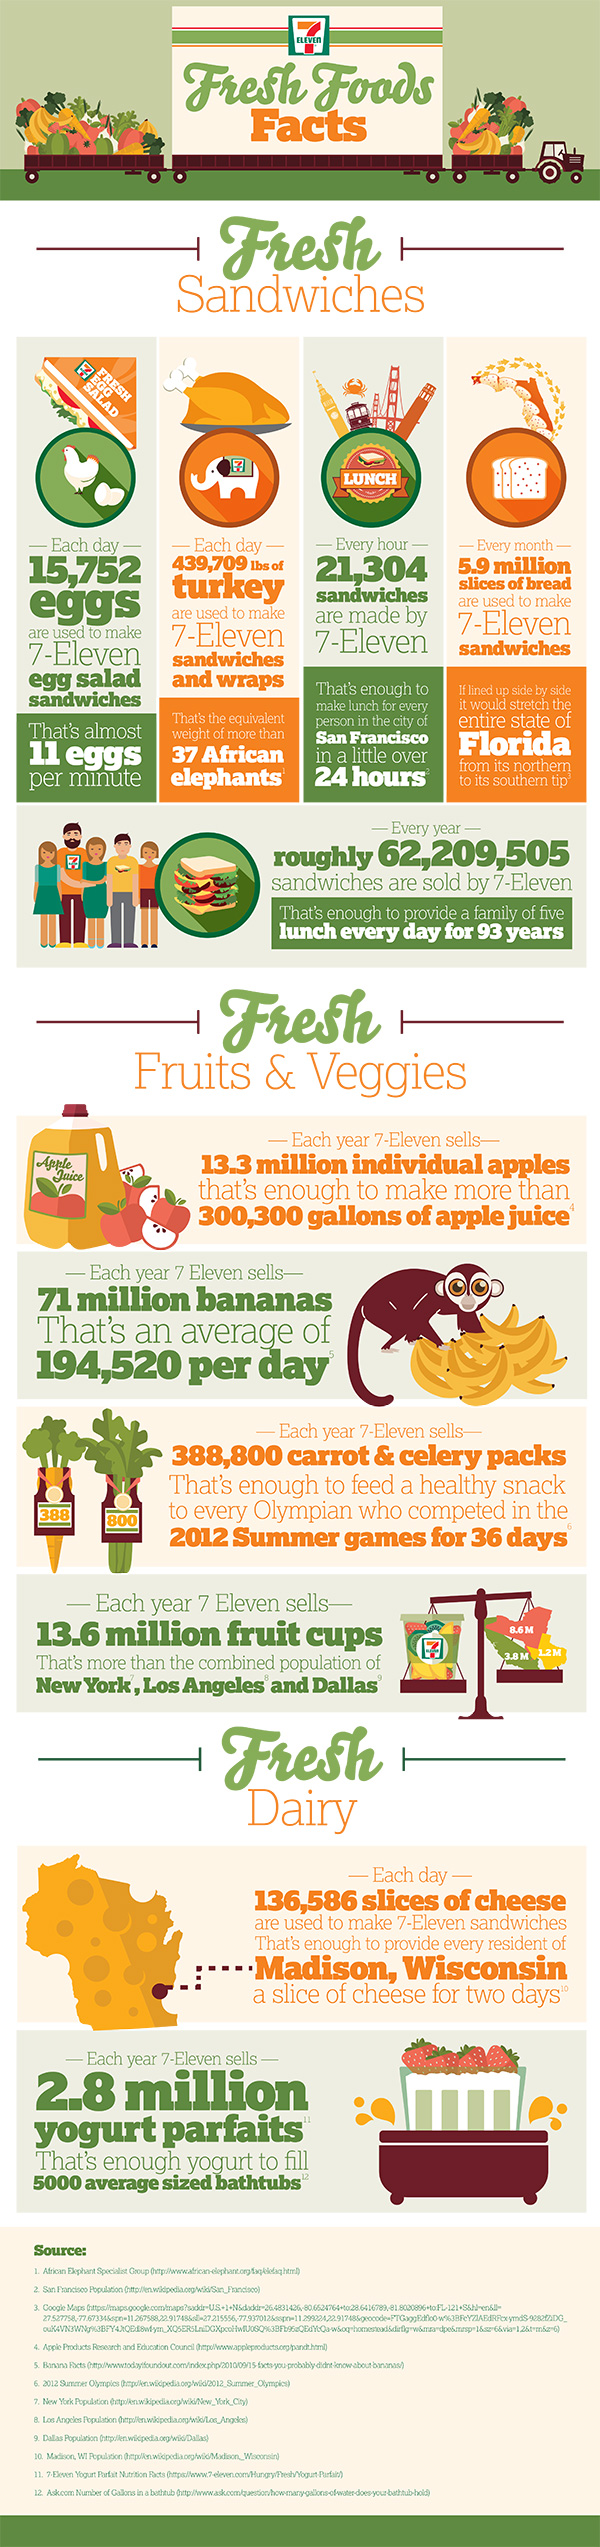 nfographic #7EFresh